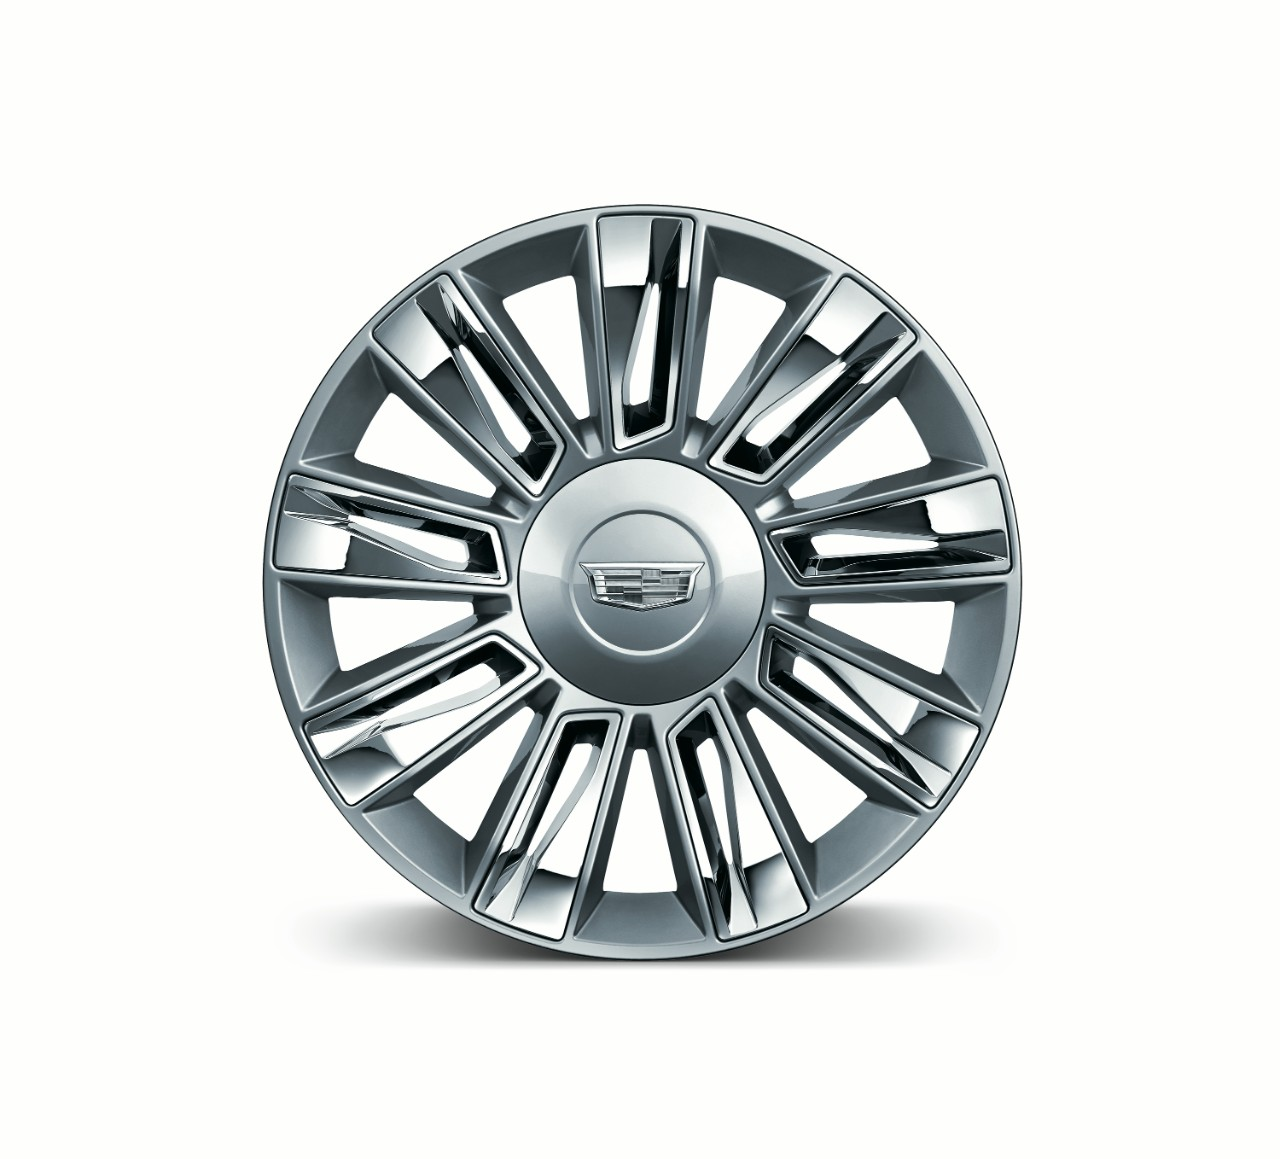 2015 Cadillac Escalade Platinum wheel